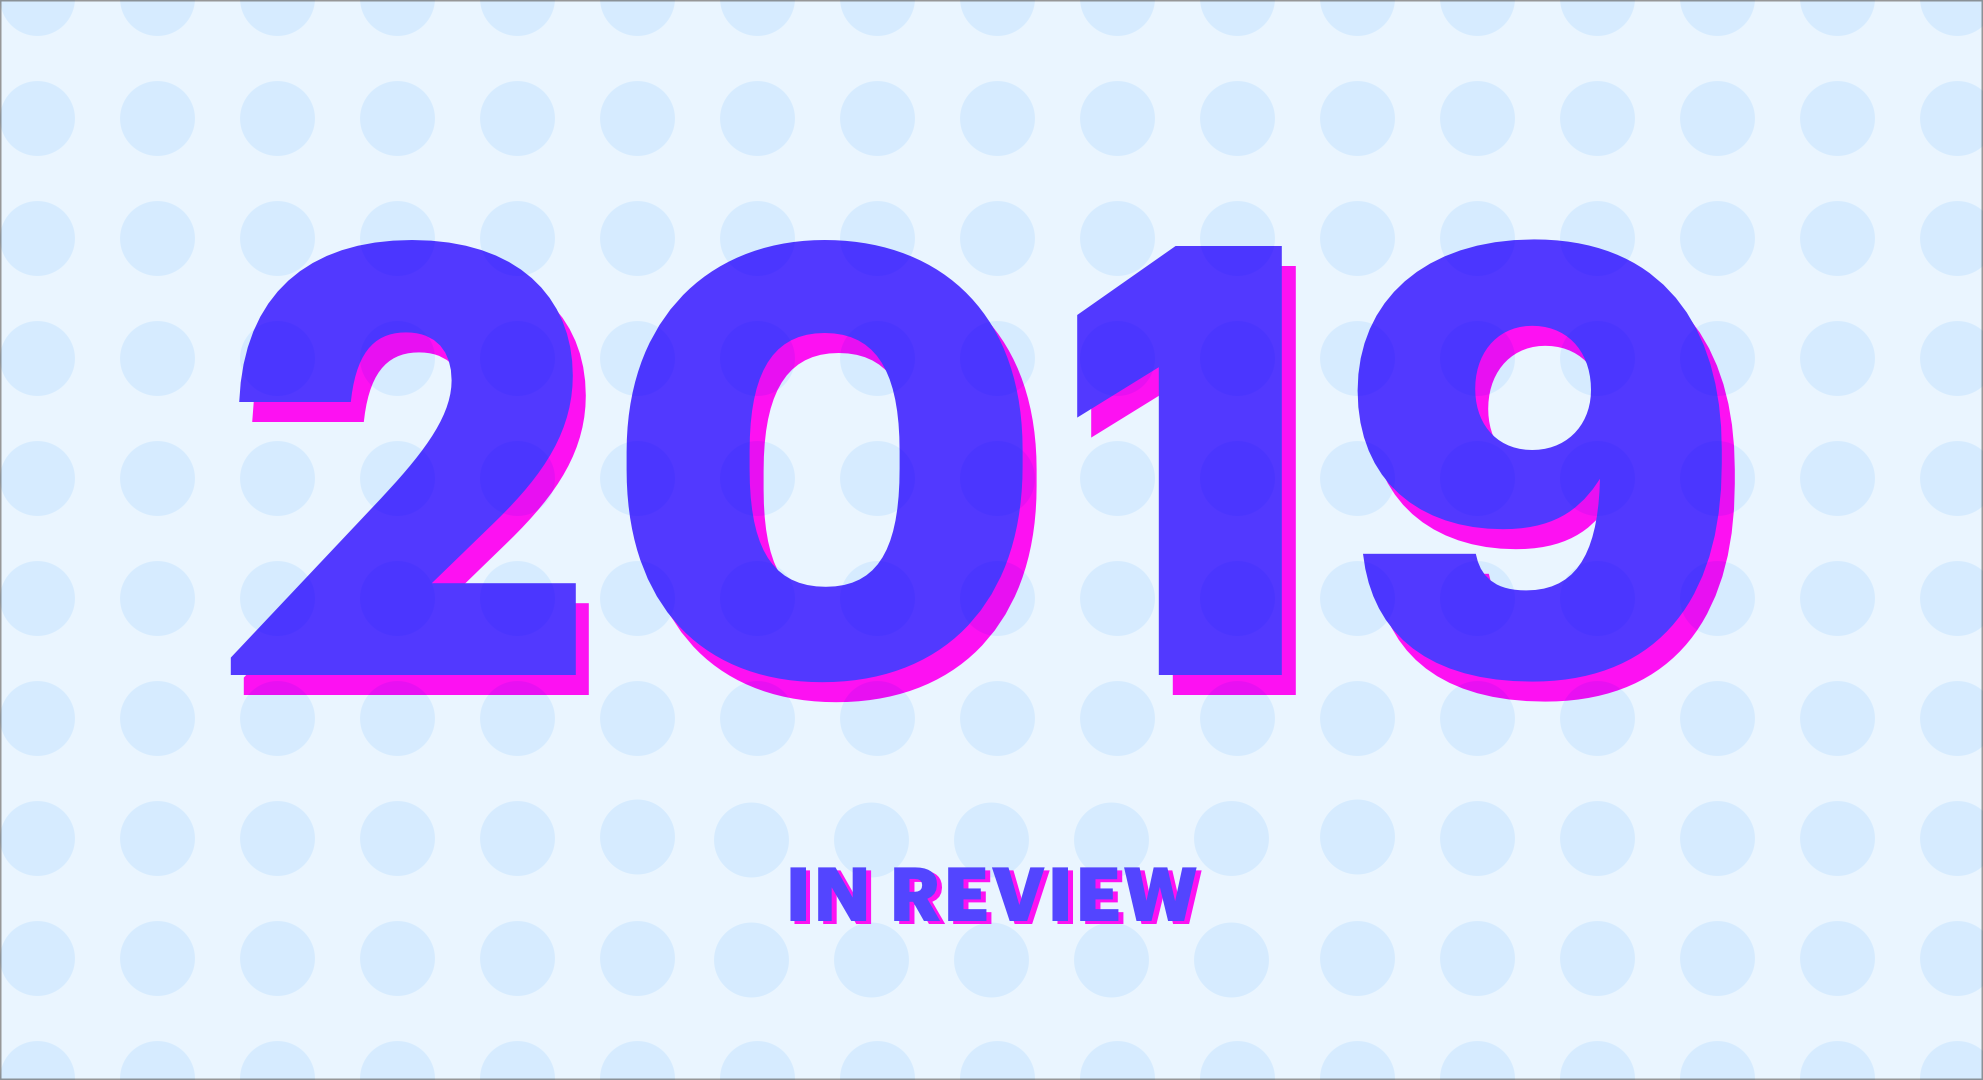 Digg Editors' Favorite Writing And Internet Culture Of 2019